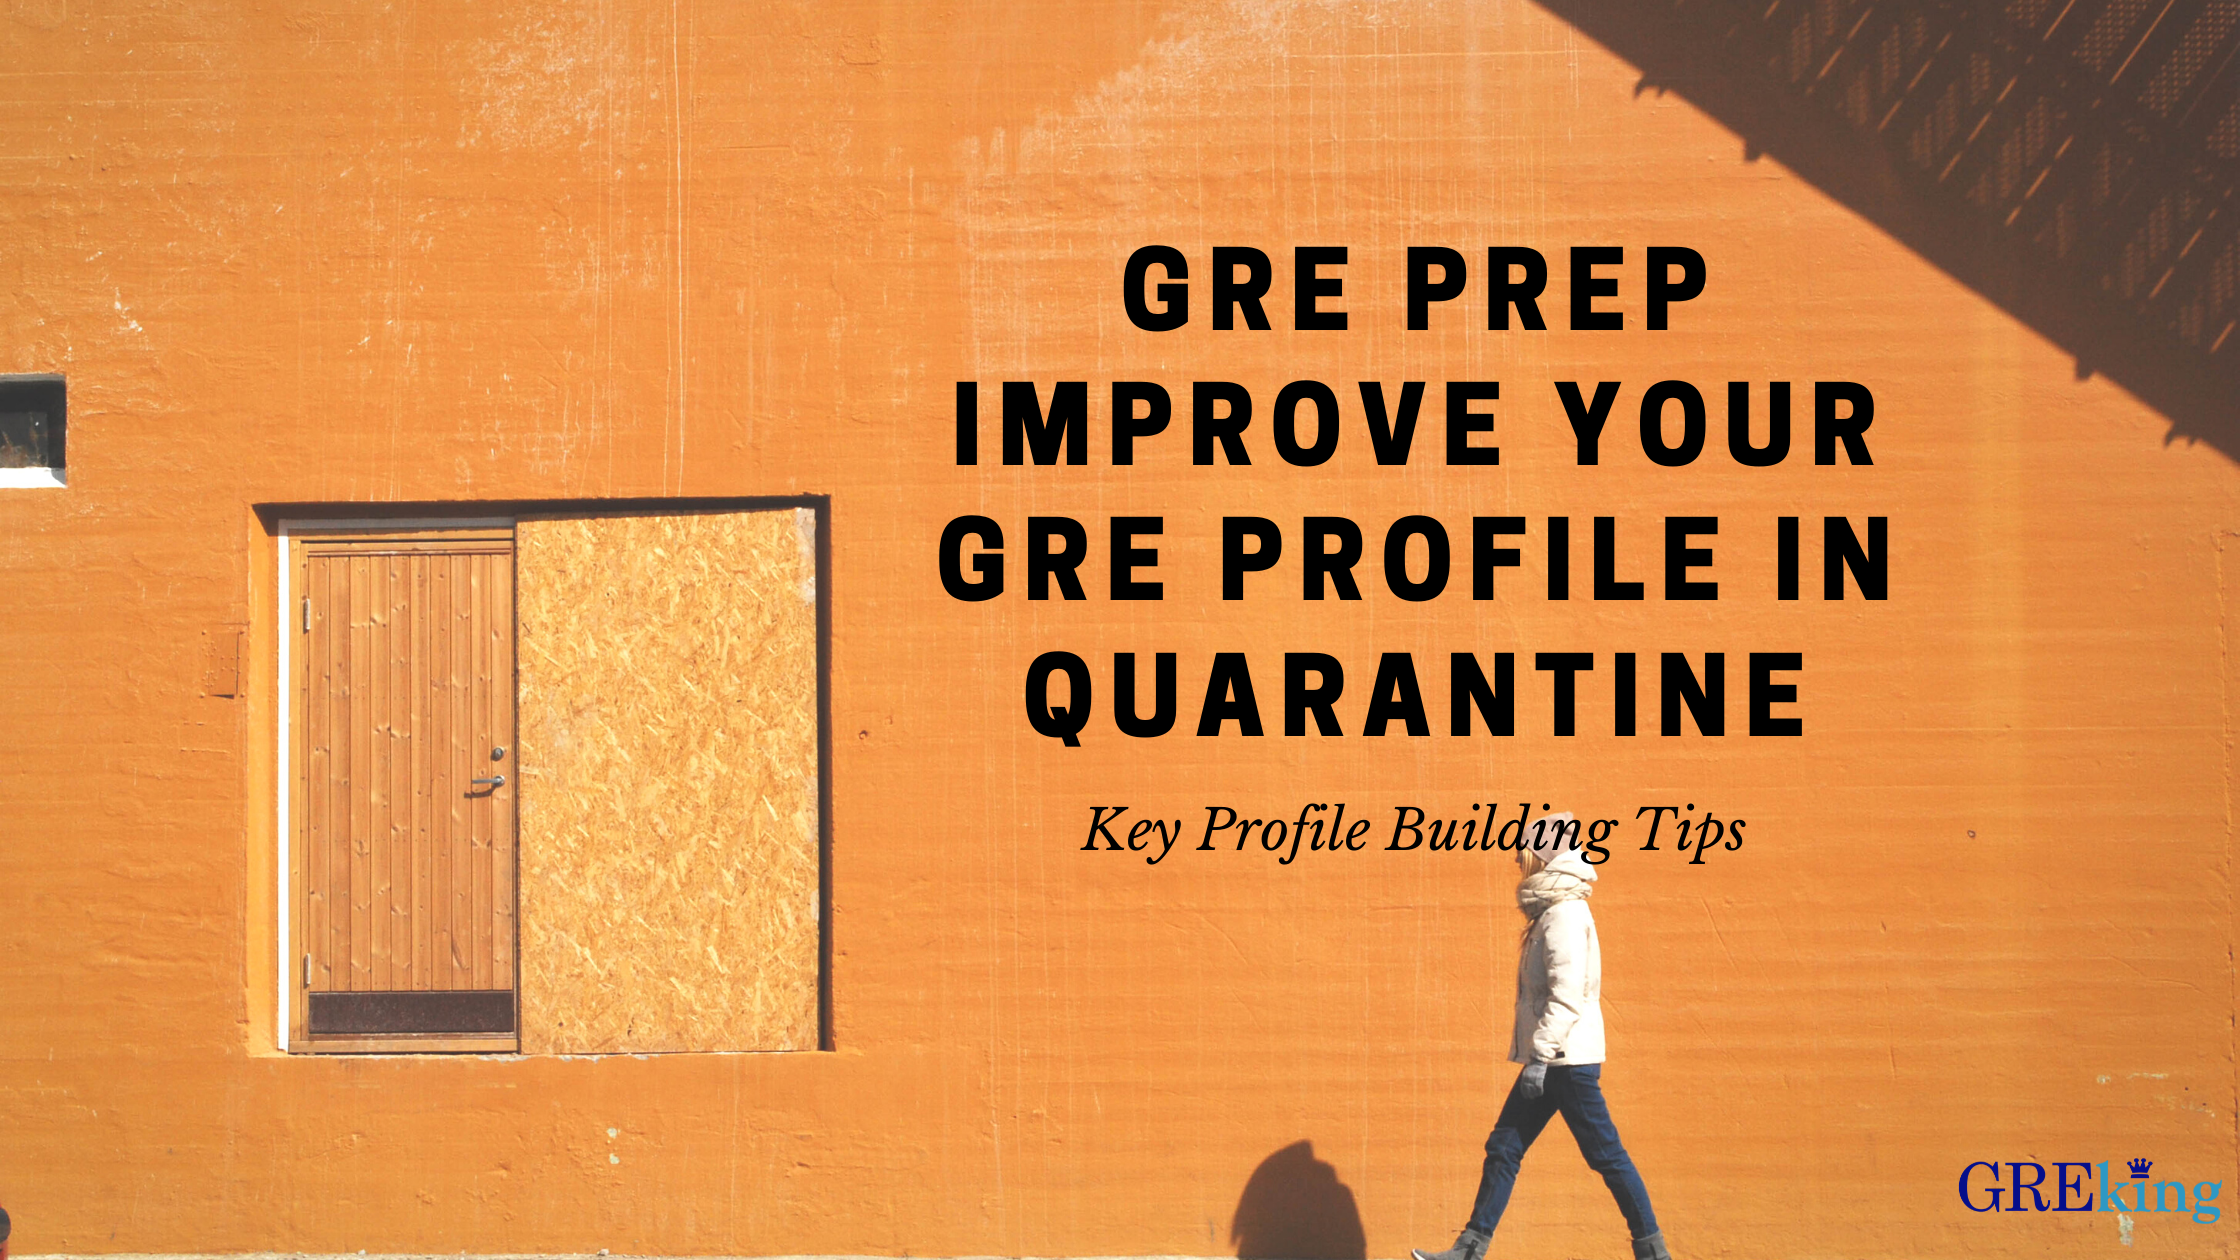 GRE Prep- How to improve your Profile in Quarantine